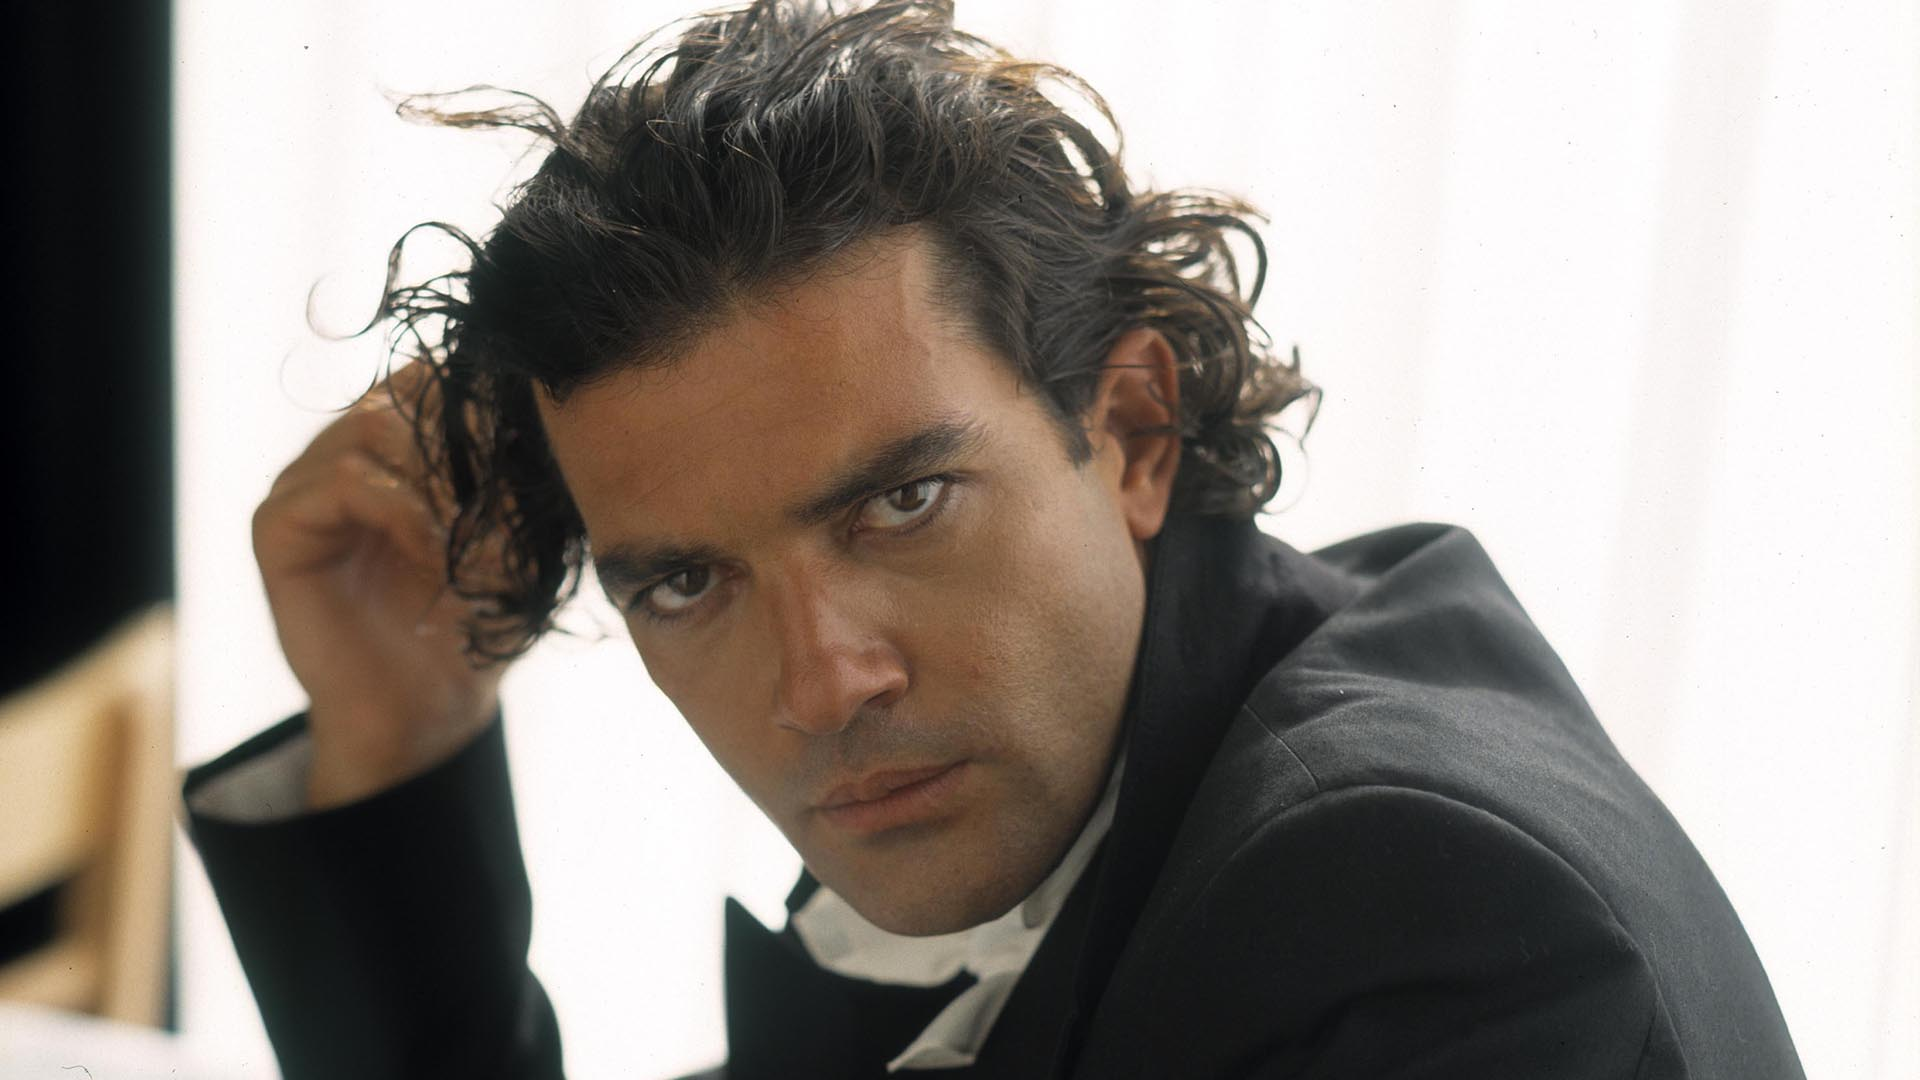 Antonio Banderas Wallpapers High Quality | Download Free